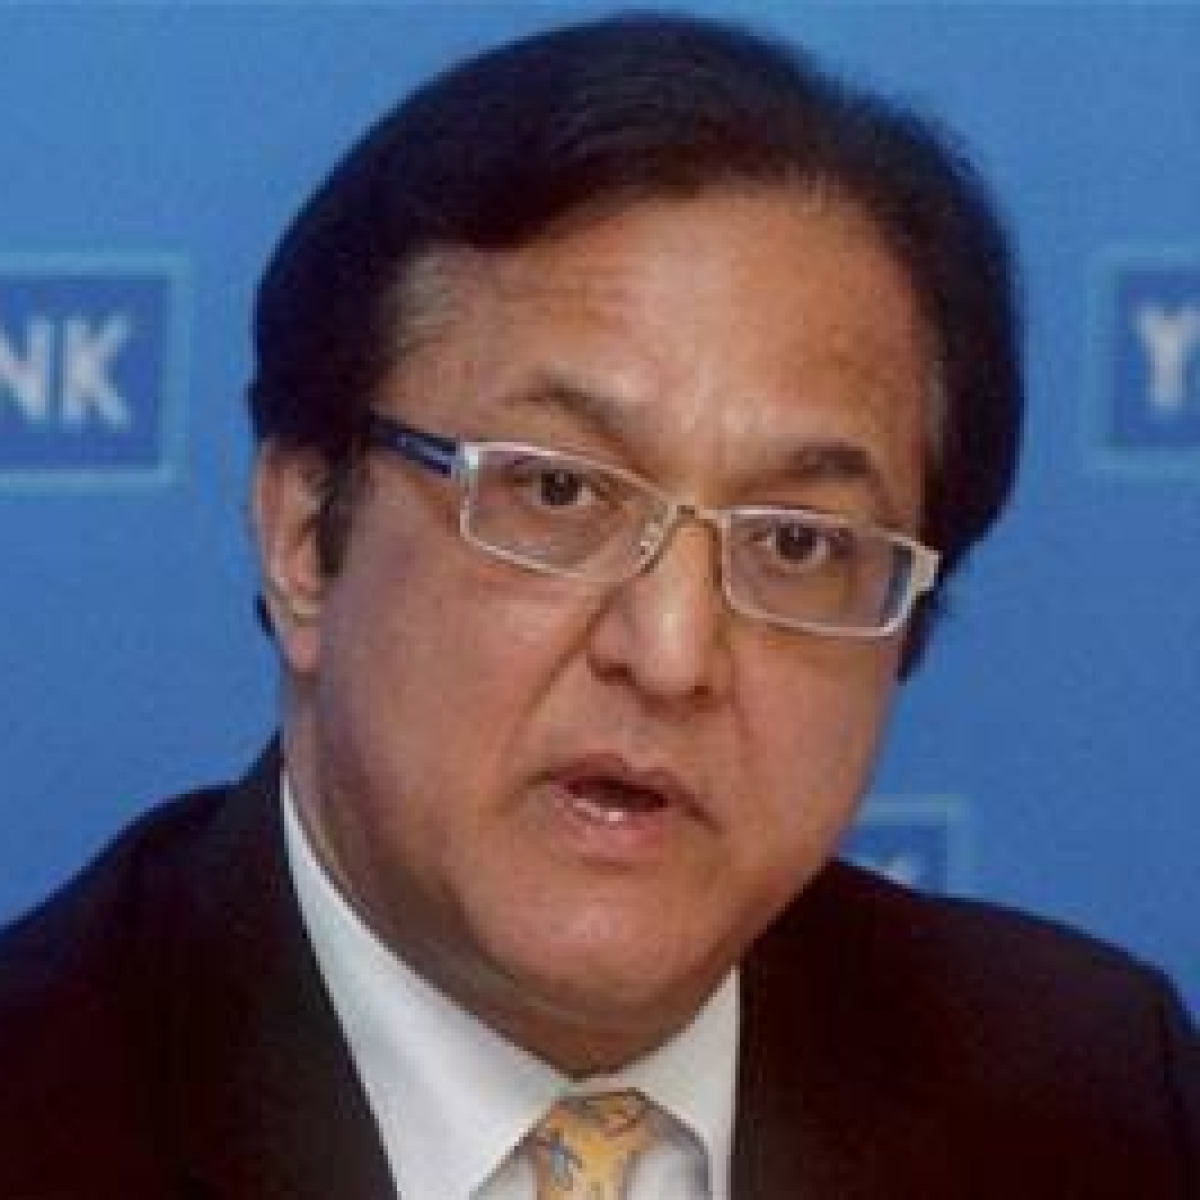 Exploring fund raising with 'diverse set of investors': Yes Bank